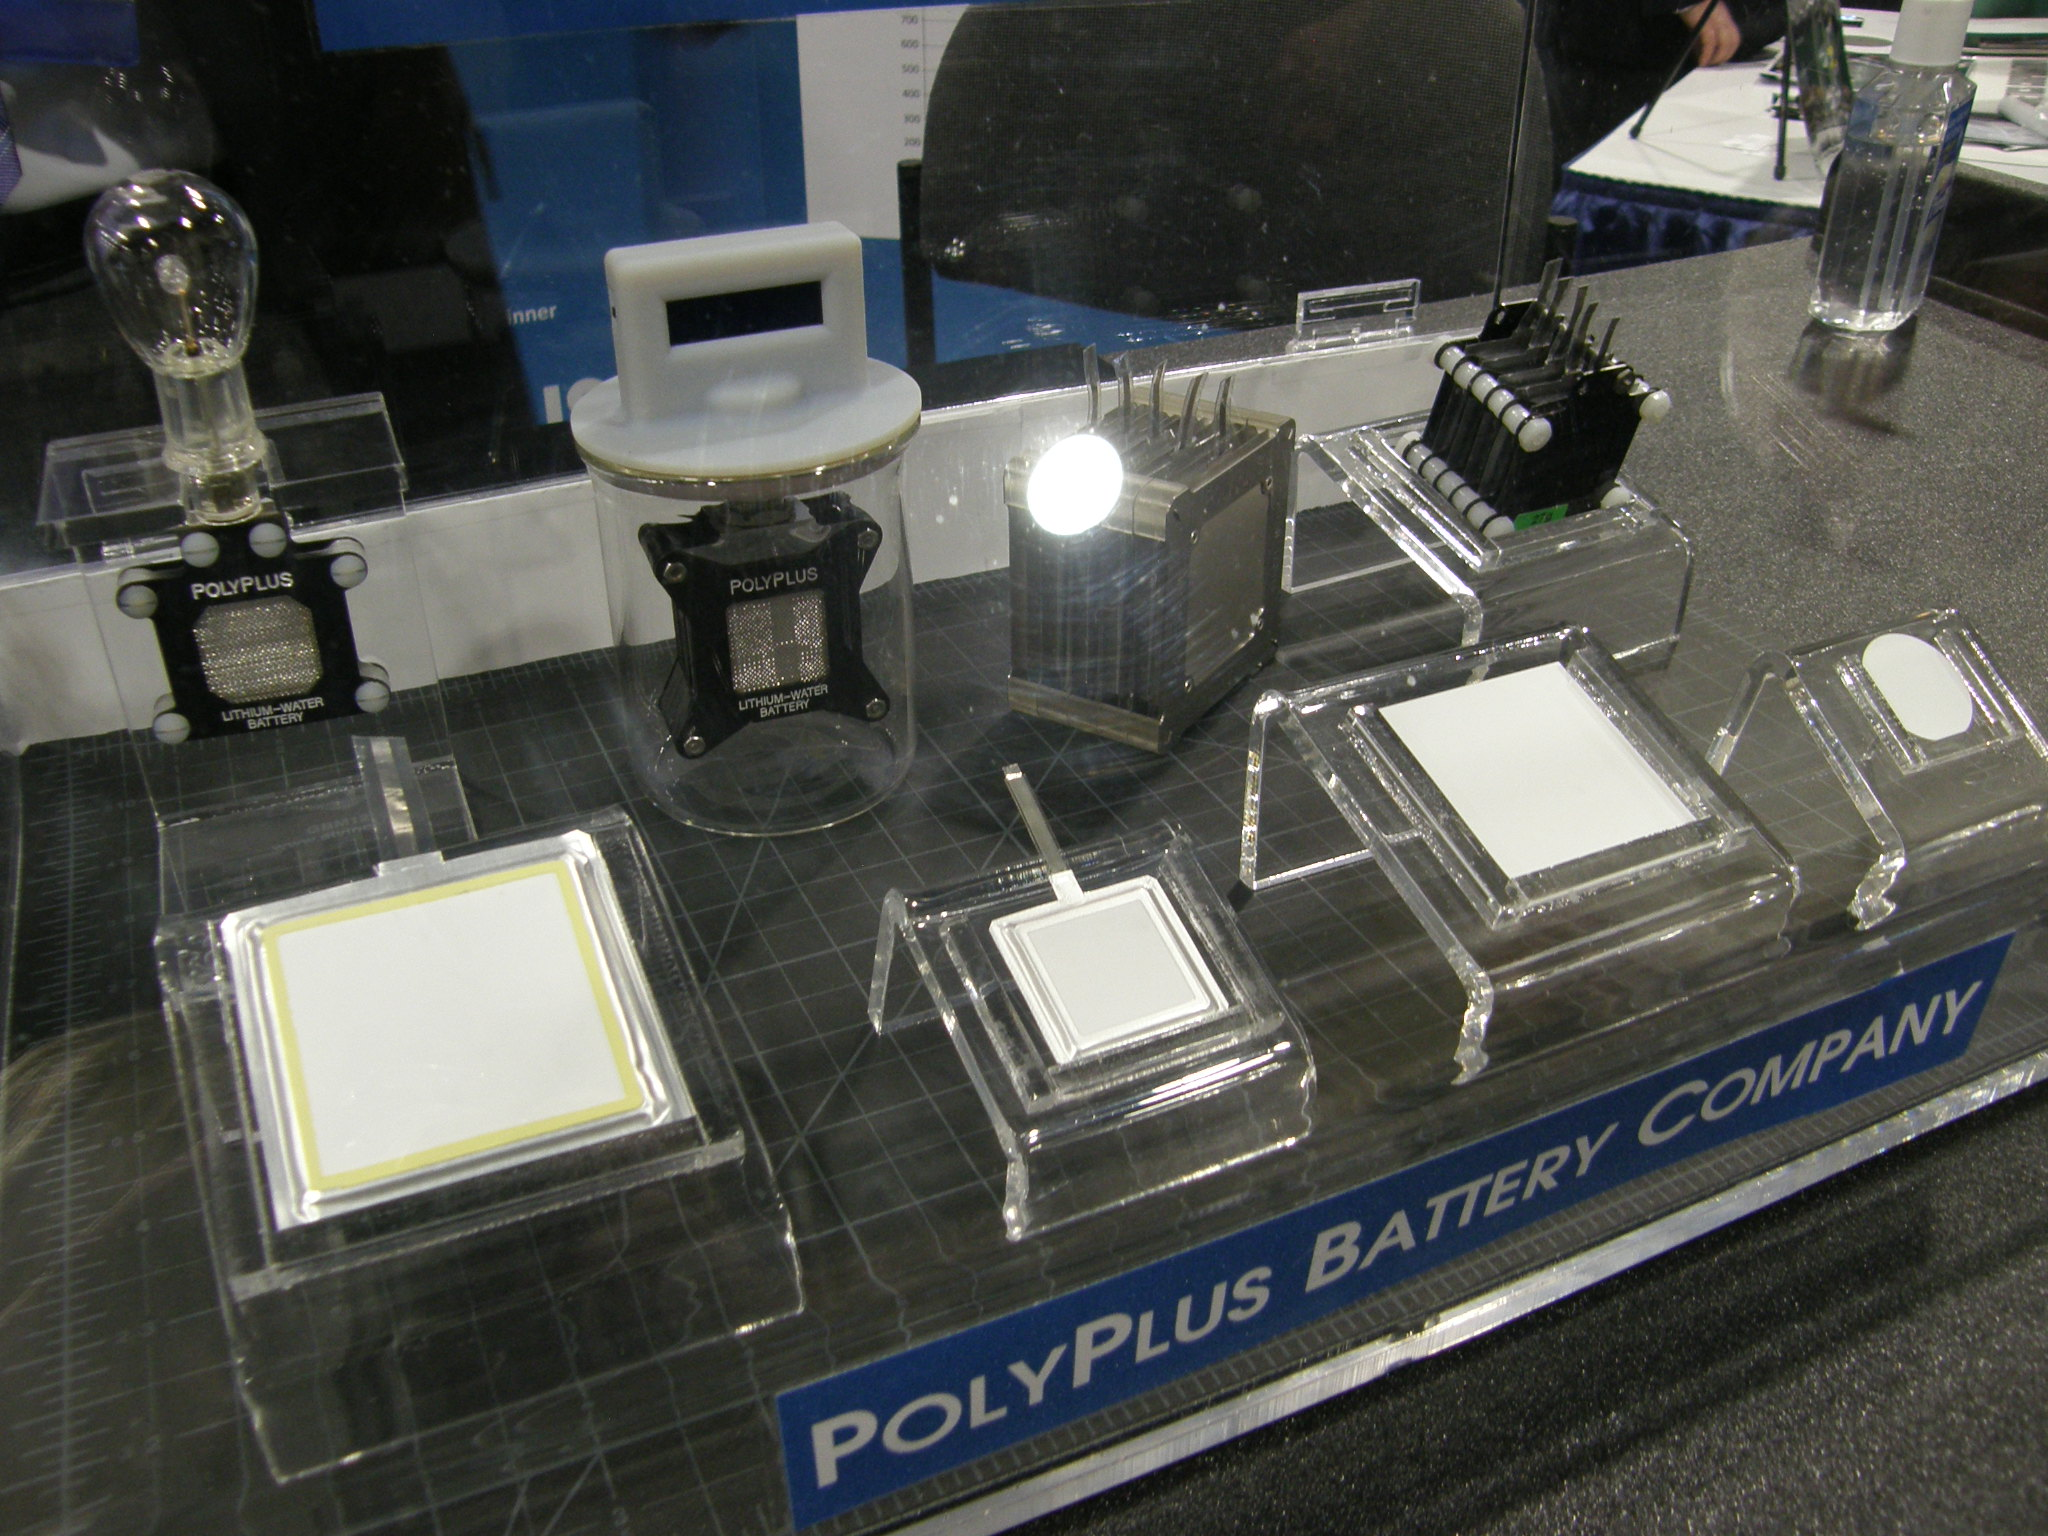 PolyPlus Batteries, image from 2011